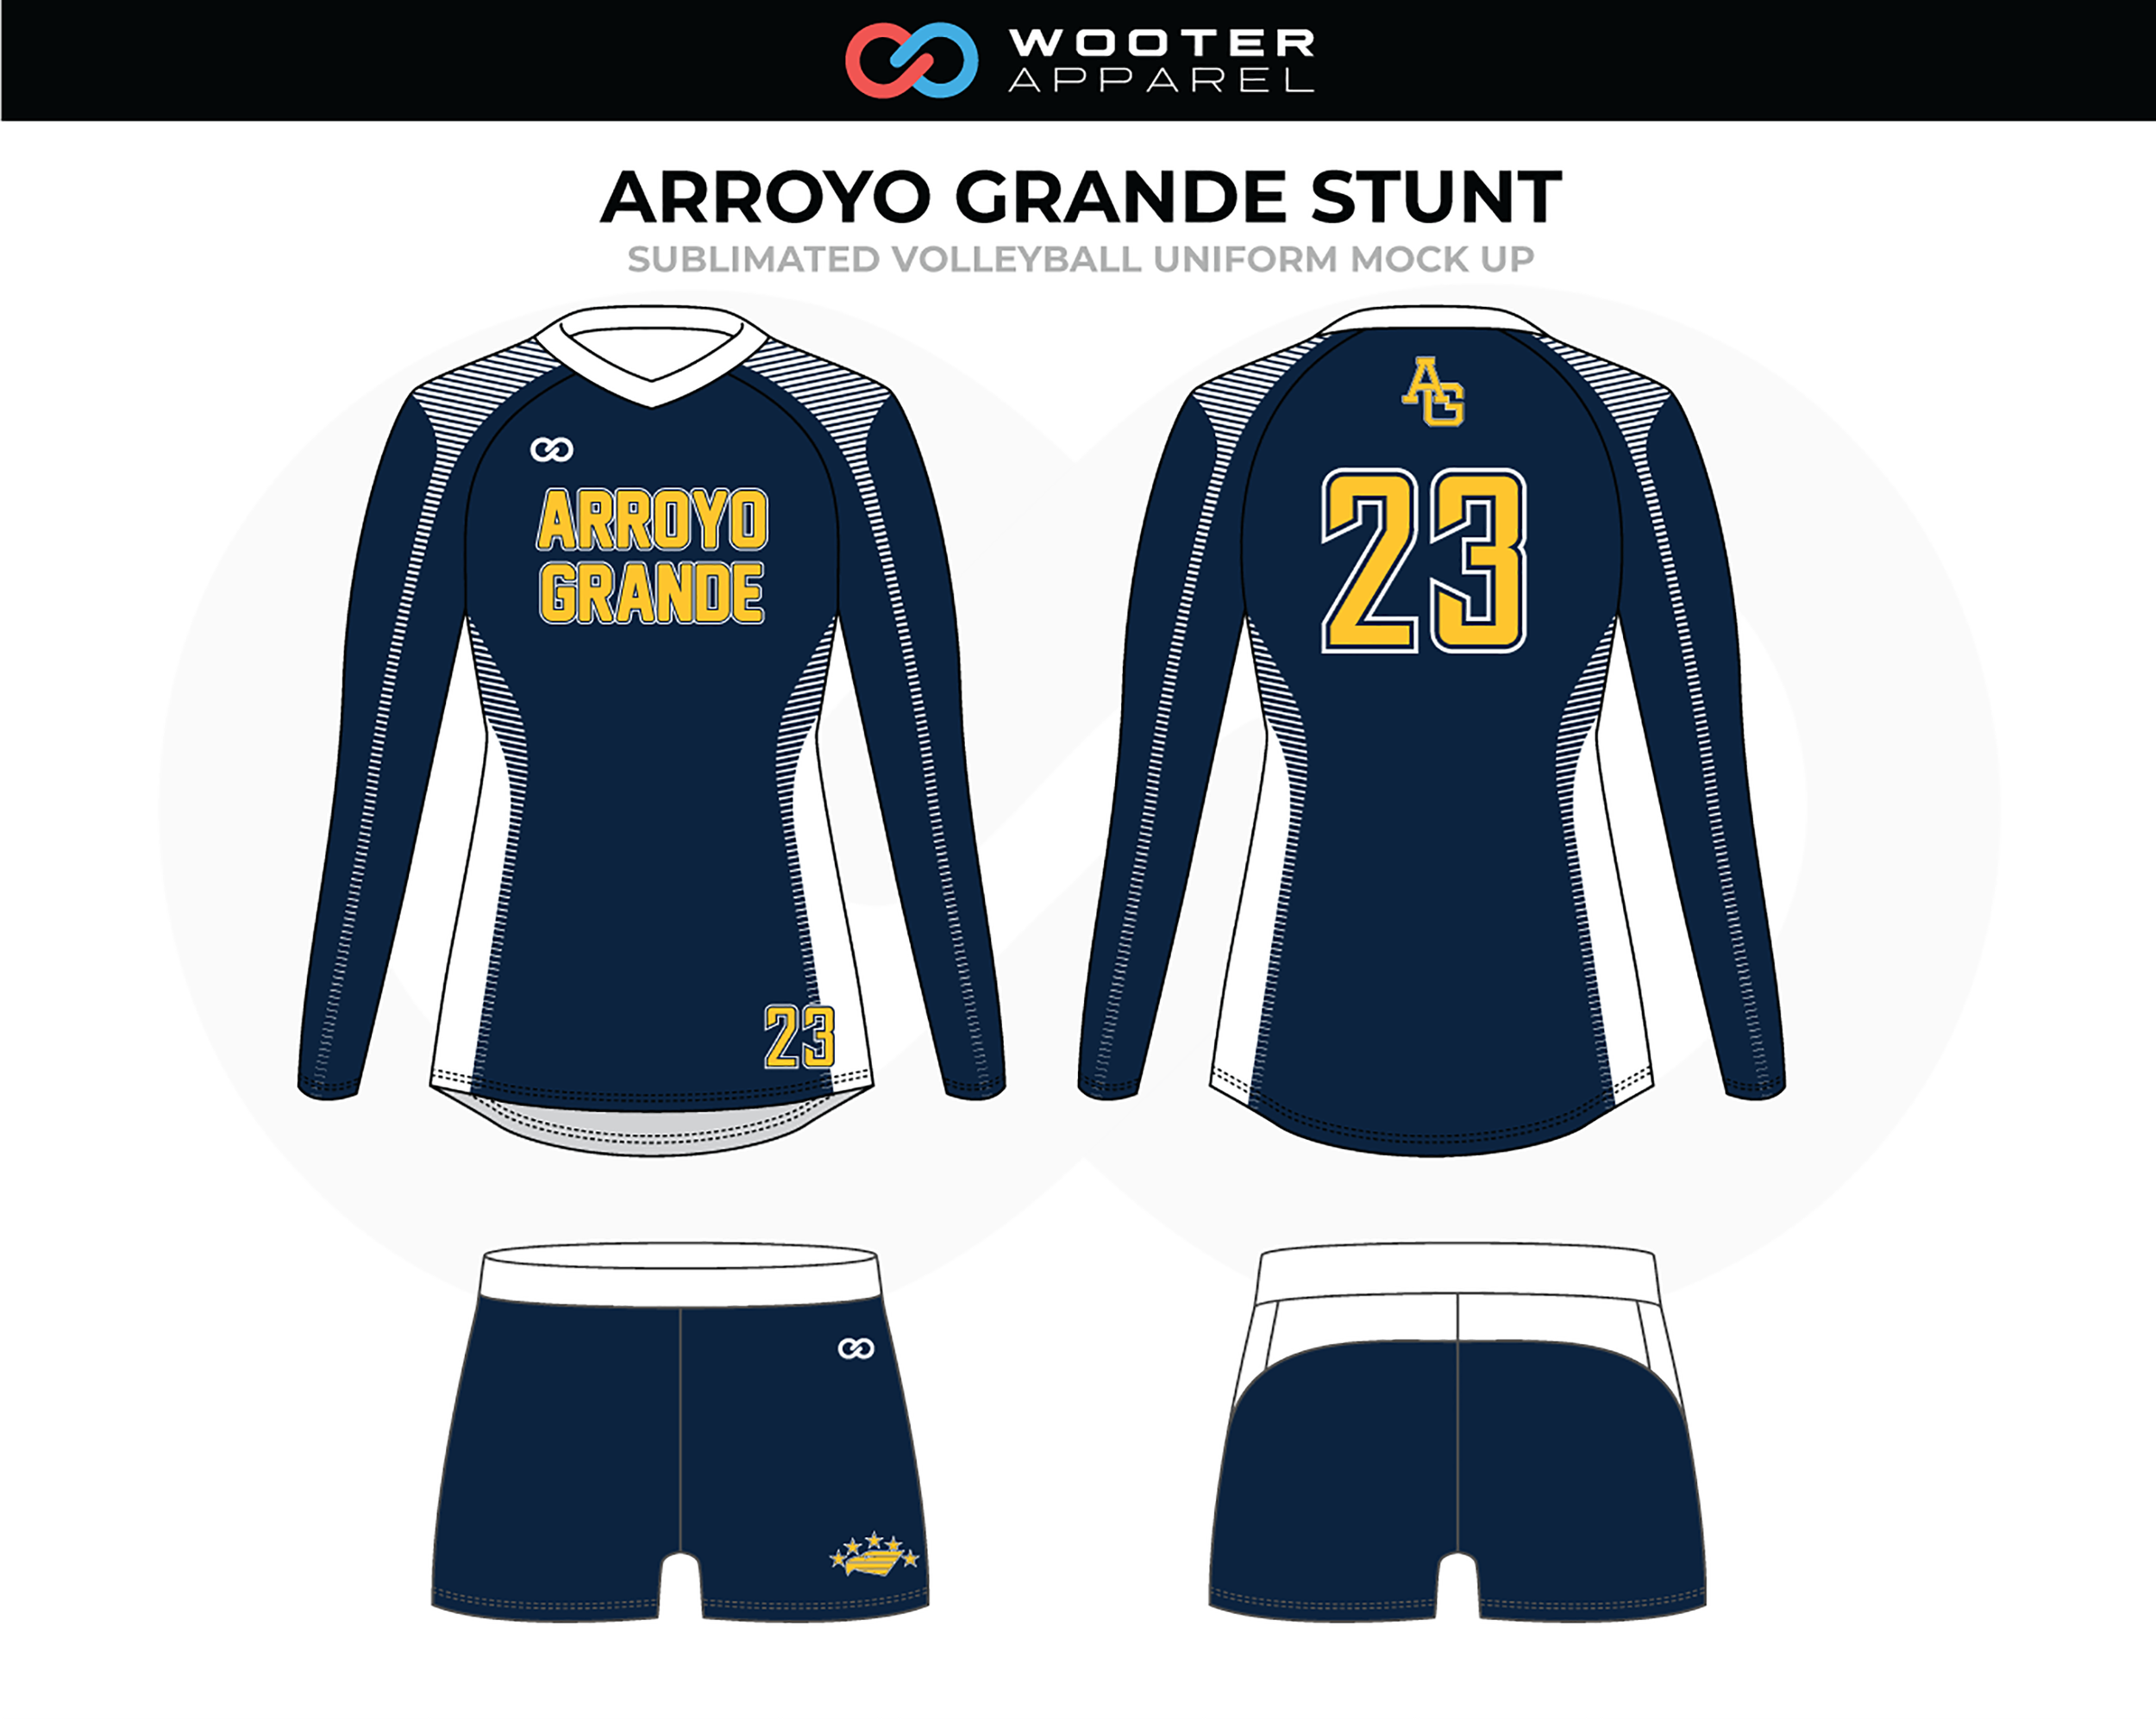 58e5e919 Volleyball Designs — Wooter Apparel | Team Uniforms and Custom ...